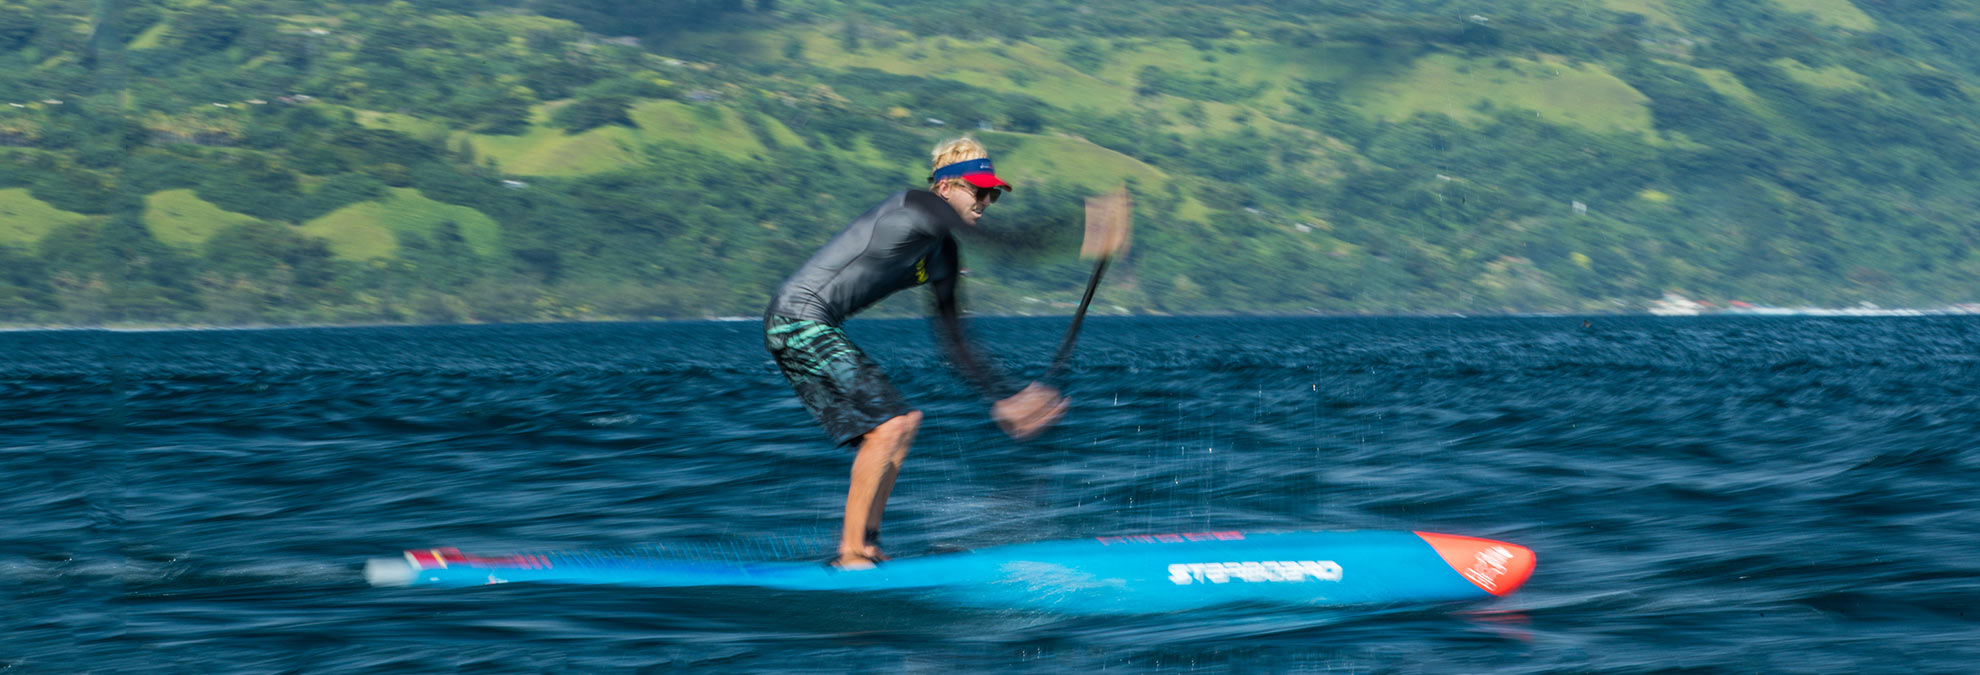 Paddle SUP Starboard